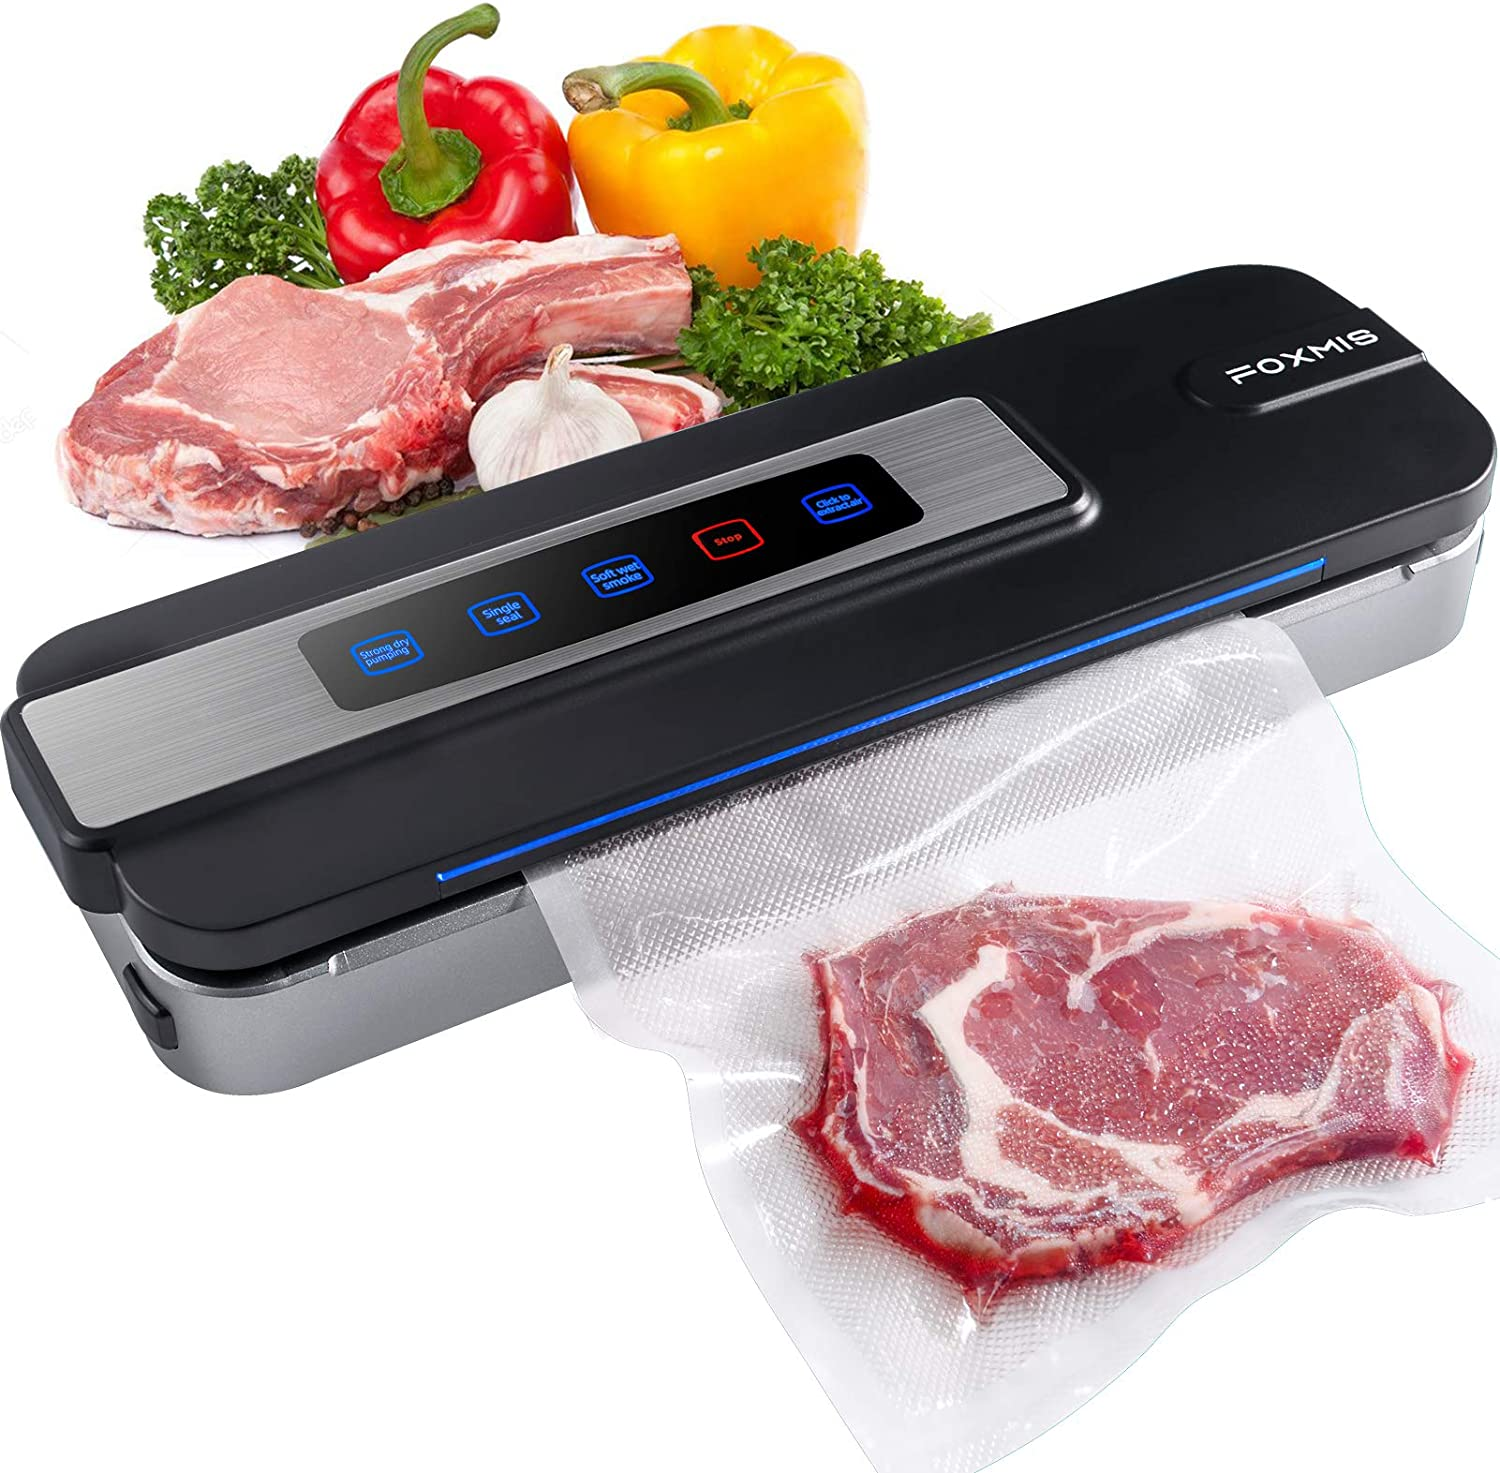 Automatic Food Vacuum Sealer, 2-in-1 Auto and Manual Electric Air Sealing Preserver System, Dry & Moist Mode Air Sealing System with 10 Sealing Bags for Food Preservation Storage, Compact Design for Sous Vide (Black)